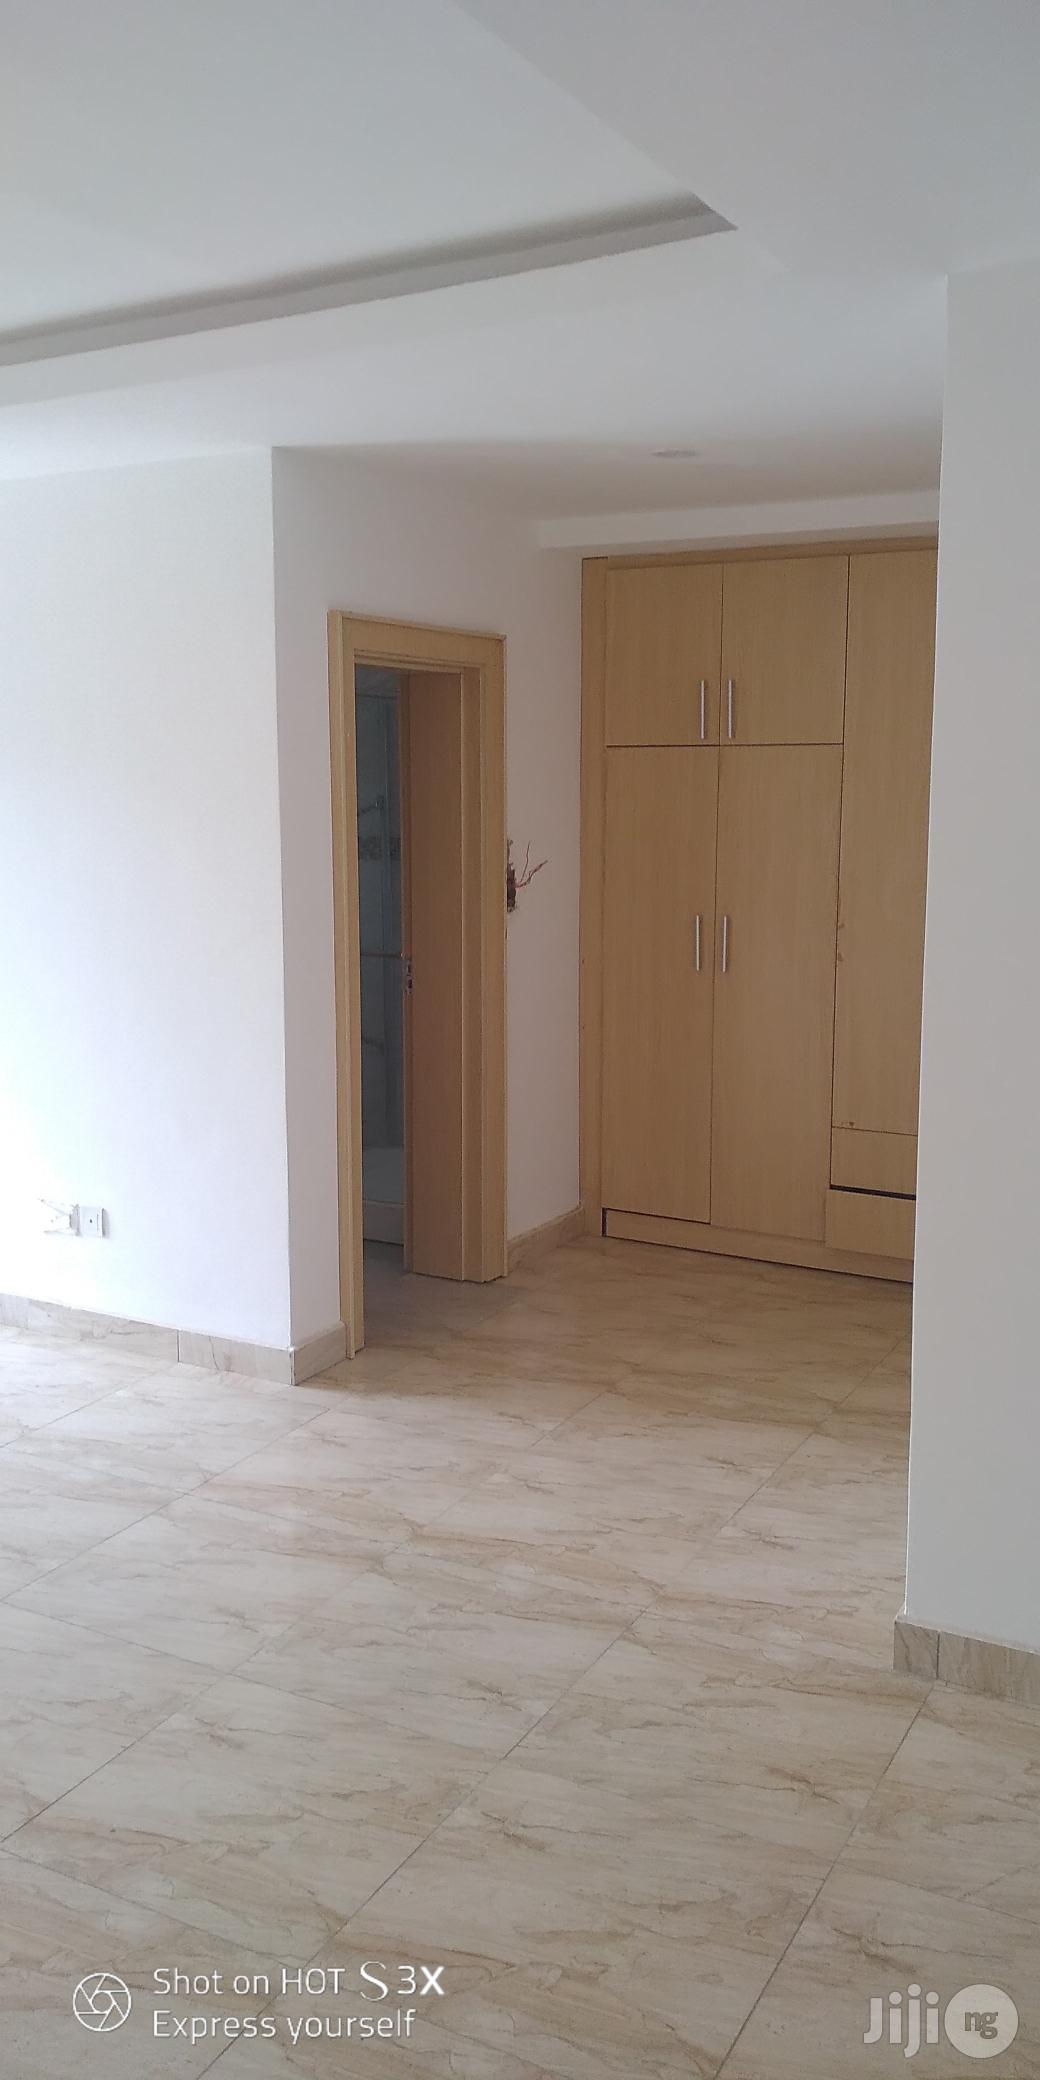 4 Bedroom Terrace Duplex | Houses & Apartments For Rent for sale in Wuse 2, Abuja (FCT) State, Nigeria